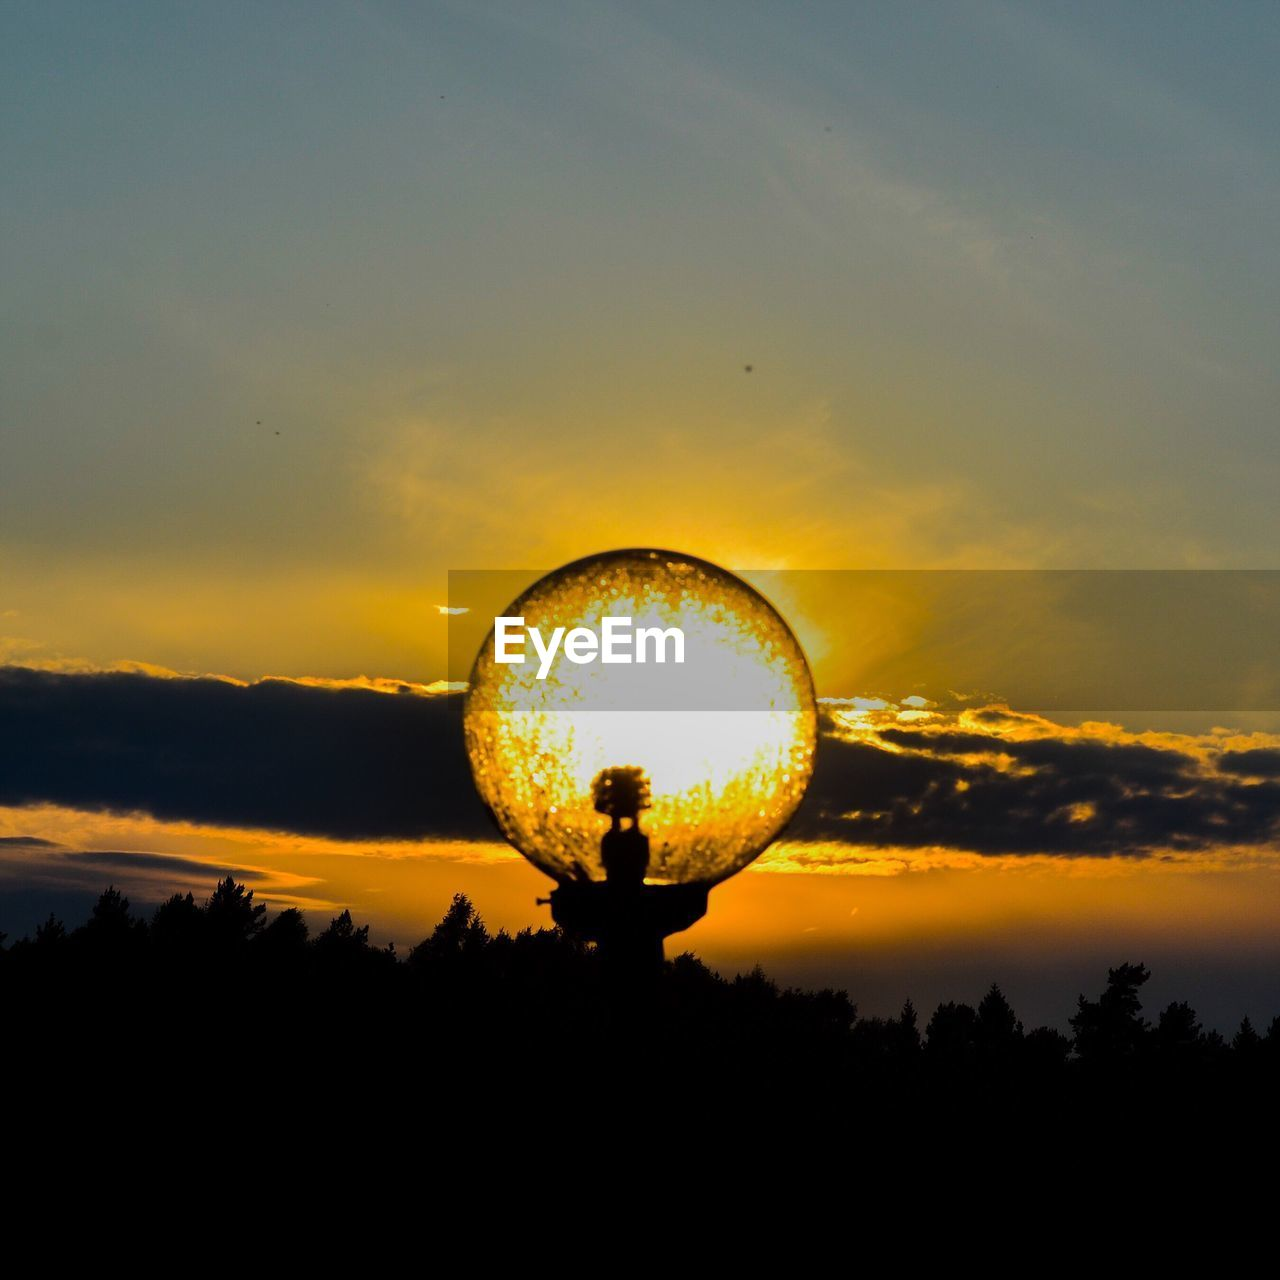 silhouette, sunset, sky, leisure activity, circle, real people, nature, cloud - sky, lifestyles, scenics, togetherness, beauty in nature, men, tree, outdoors, standing, bubble wand, day, people